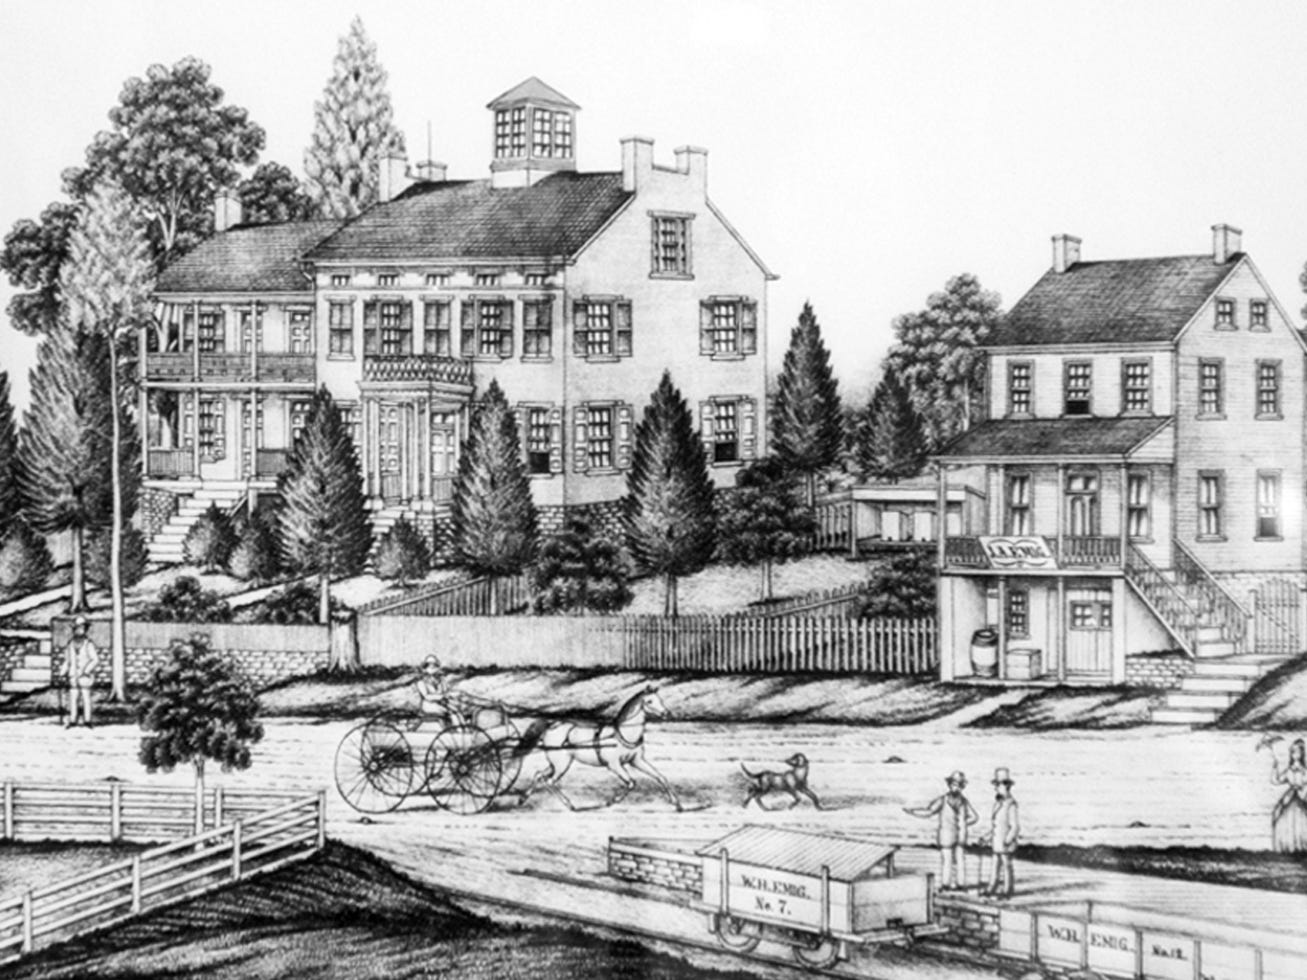 A sketch dated 1856 of the Emig Mansion as it looked from across what is now North George Street.